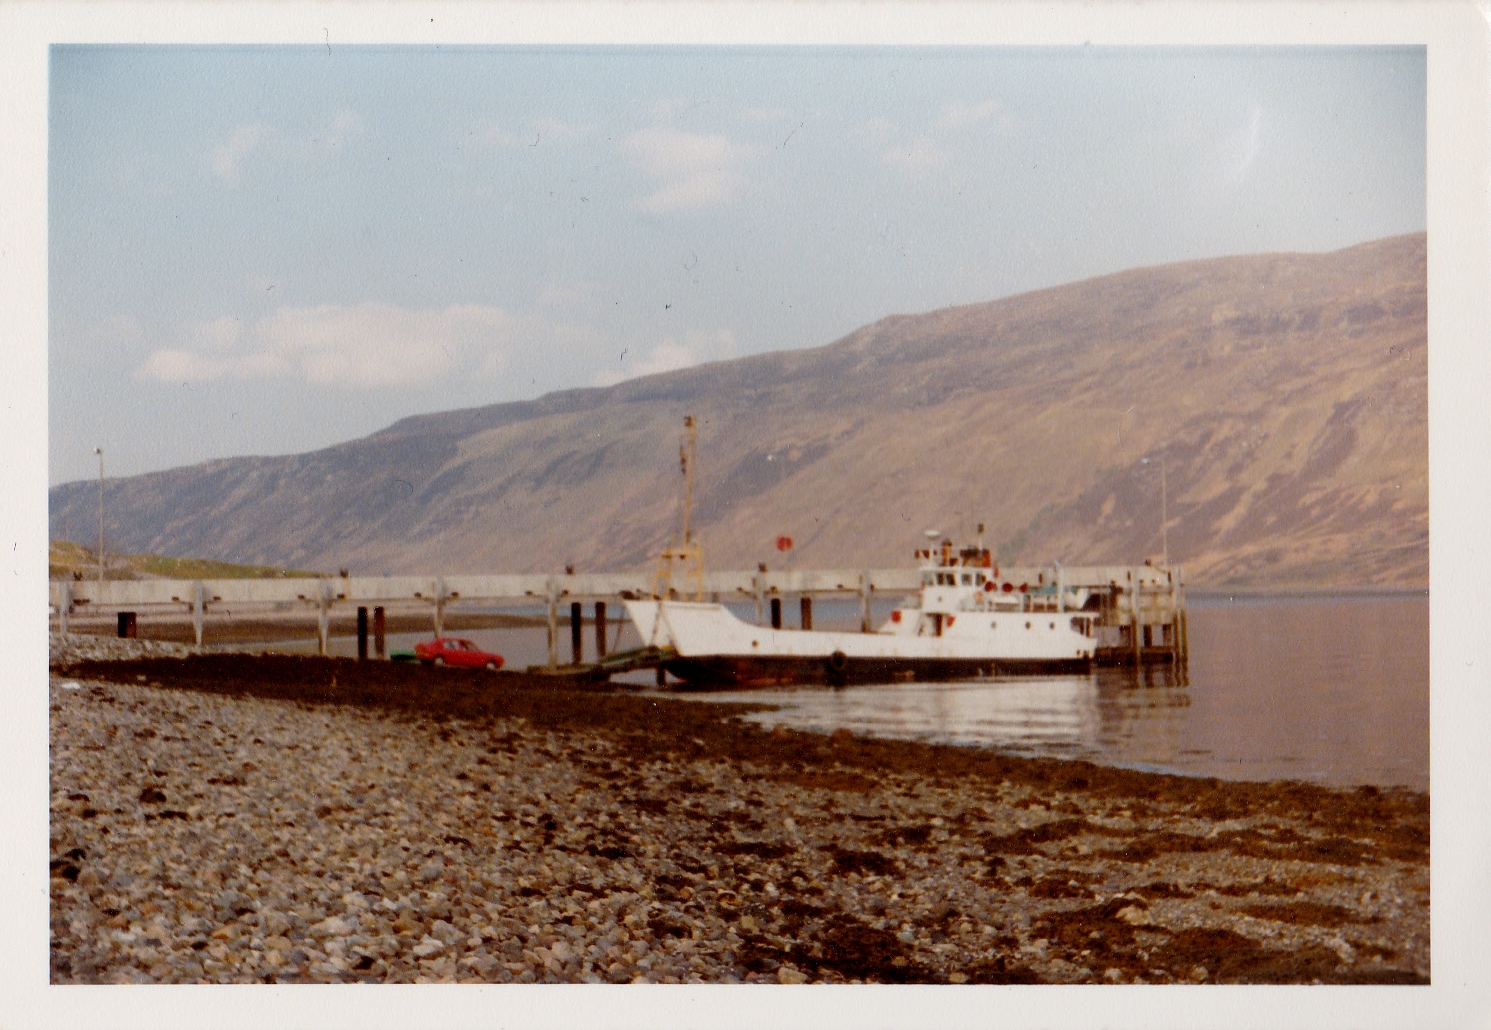 Raasay at Sconser (Jim Aikman Smith)